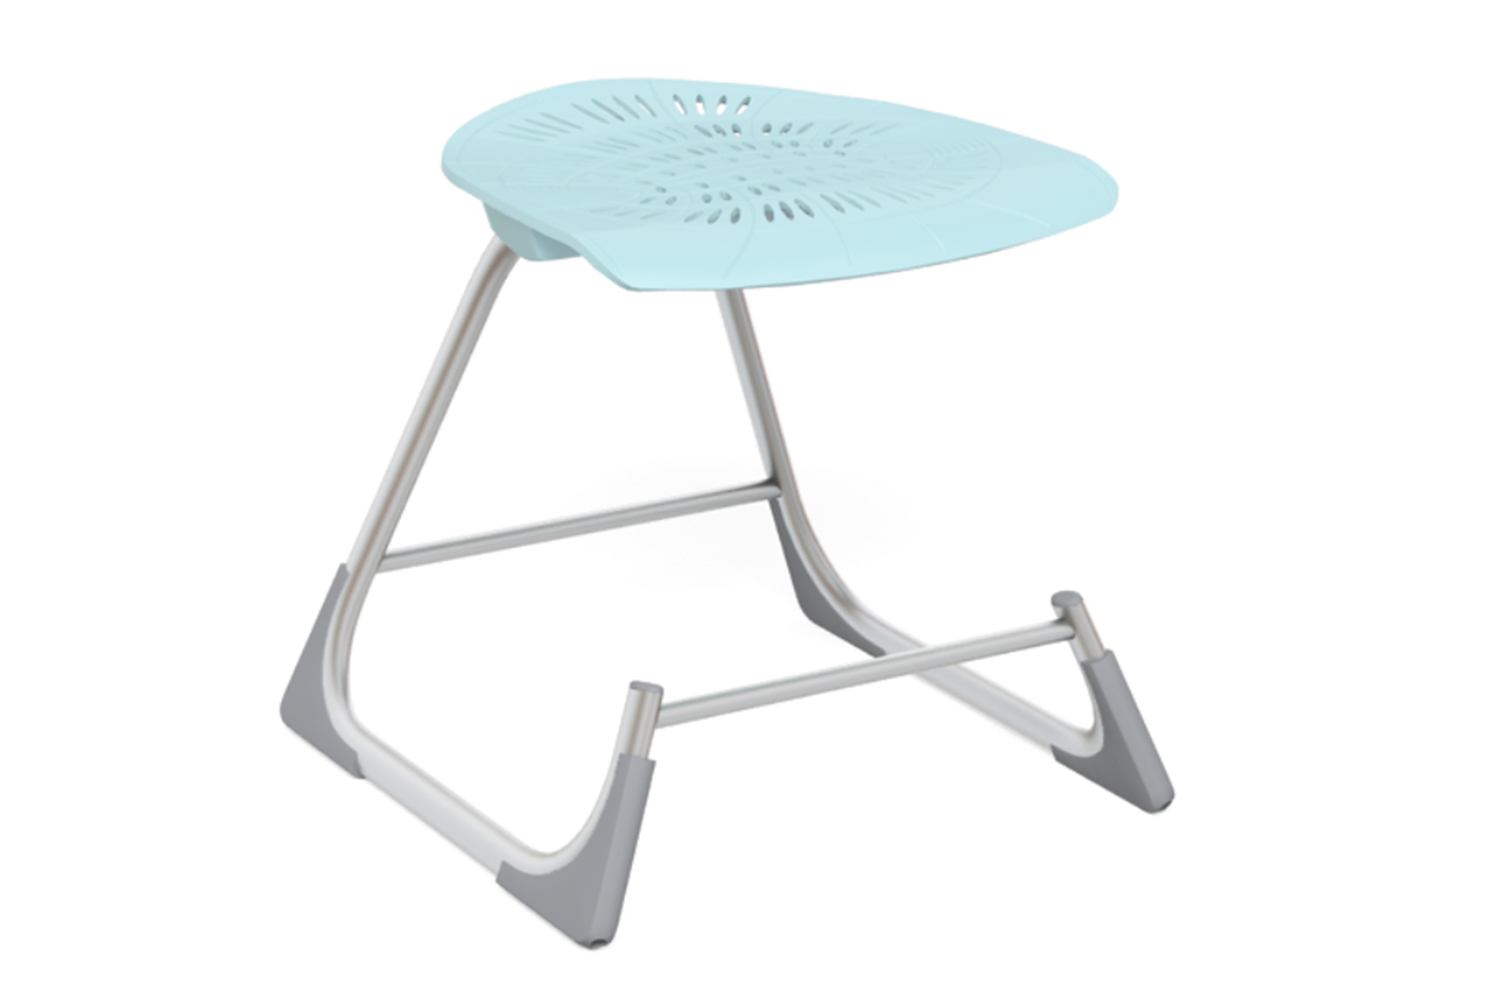 A variety of heights and polypropylene seat options are available in a multitude of colors.